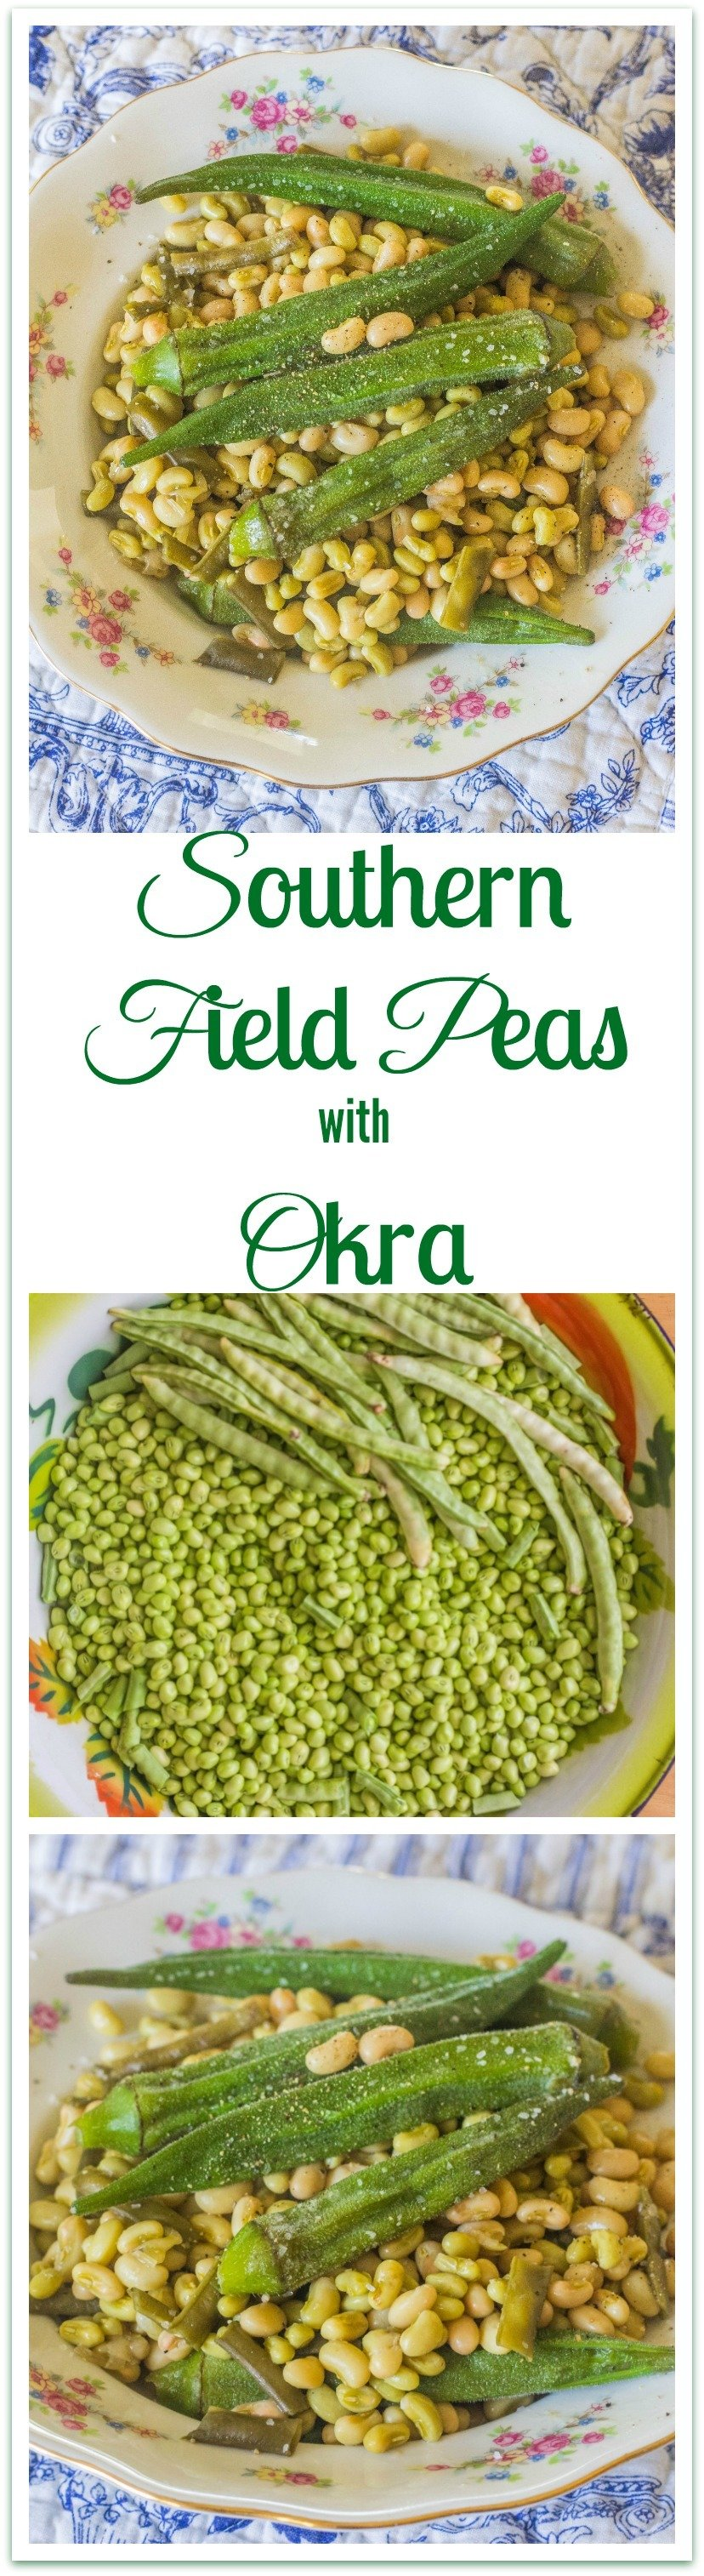 The crown jewel of Southern summer vegetables. A simple recipe for a delicious dish. #SouthernField #PeasOkra